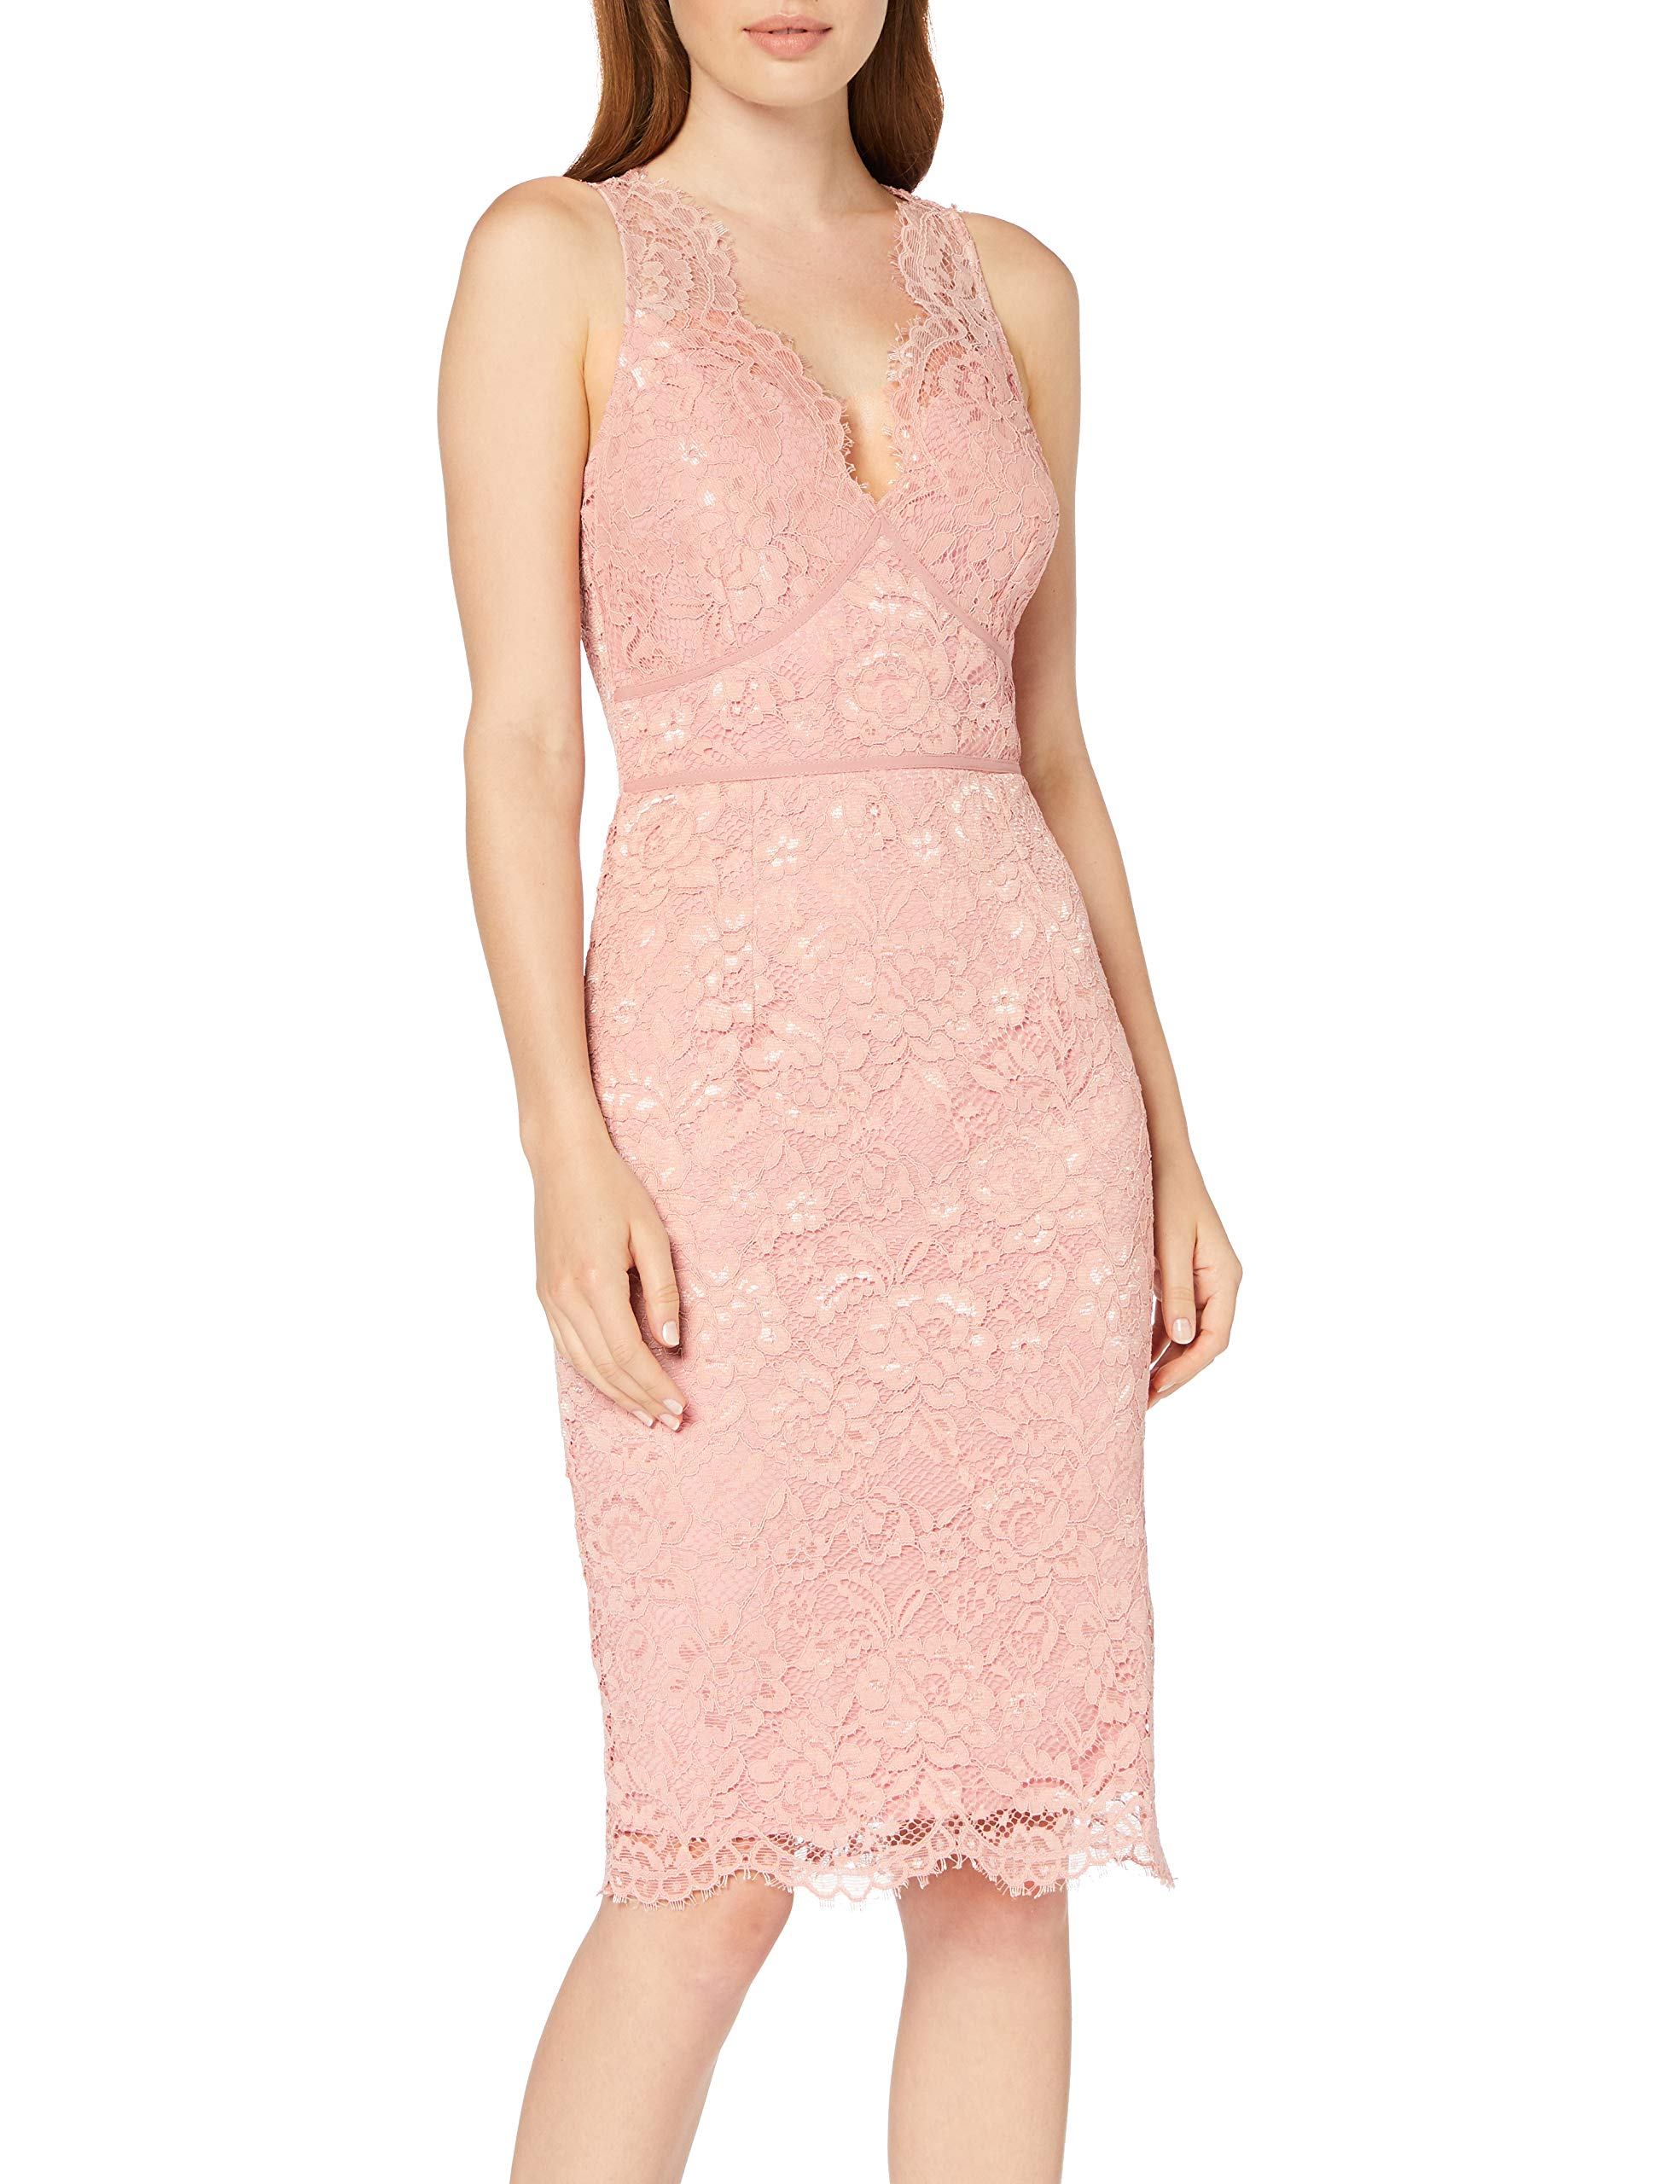 Fabricant6Femme Robe Eloise Lace Rose Soirée00134taille Little Dress Bodycon Mistress De shQCdrxt